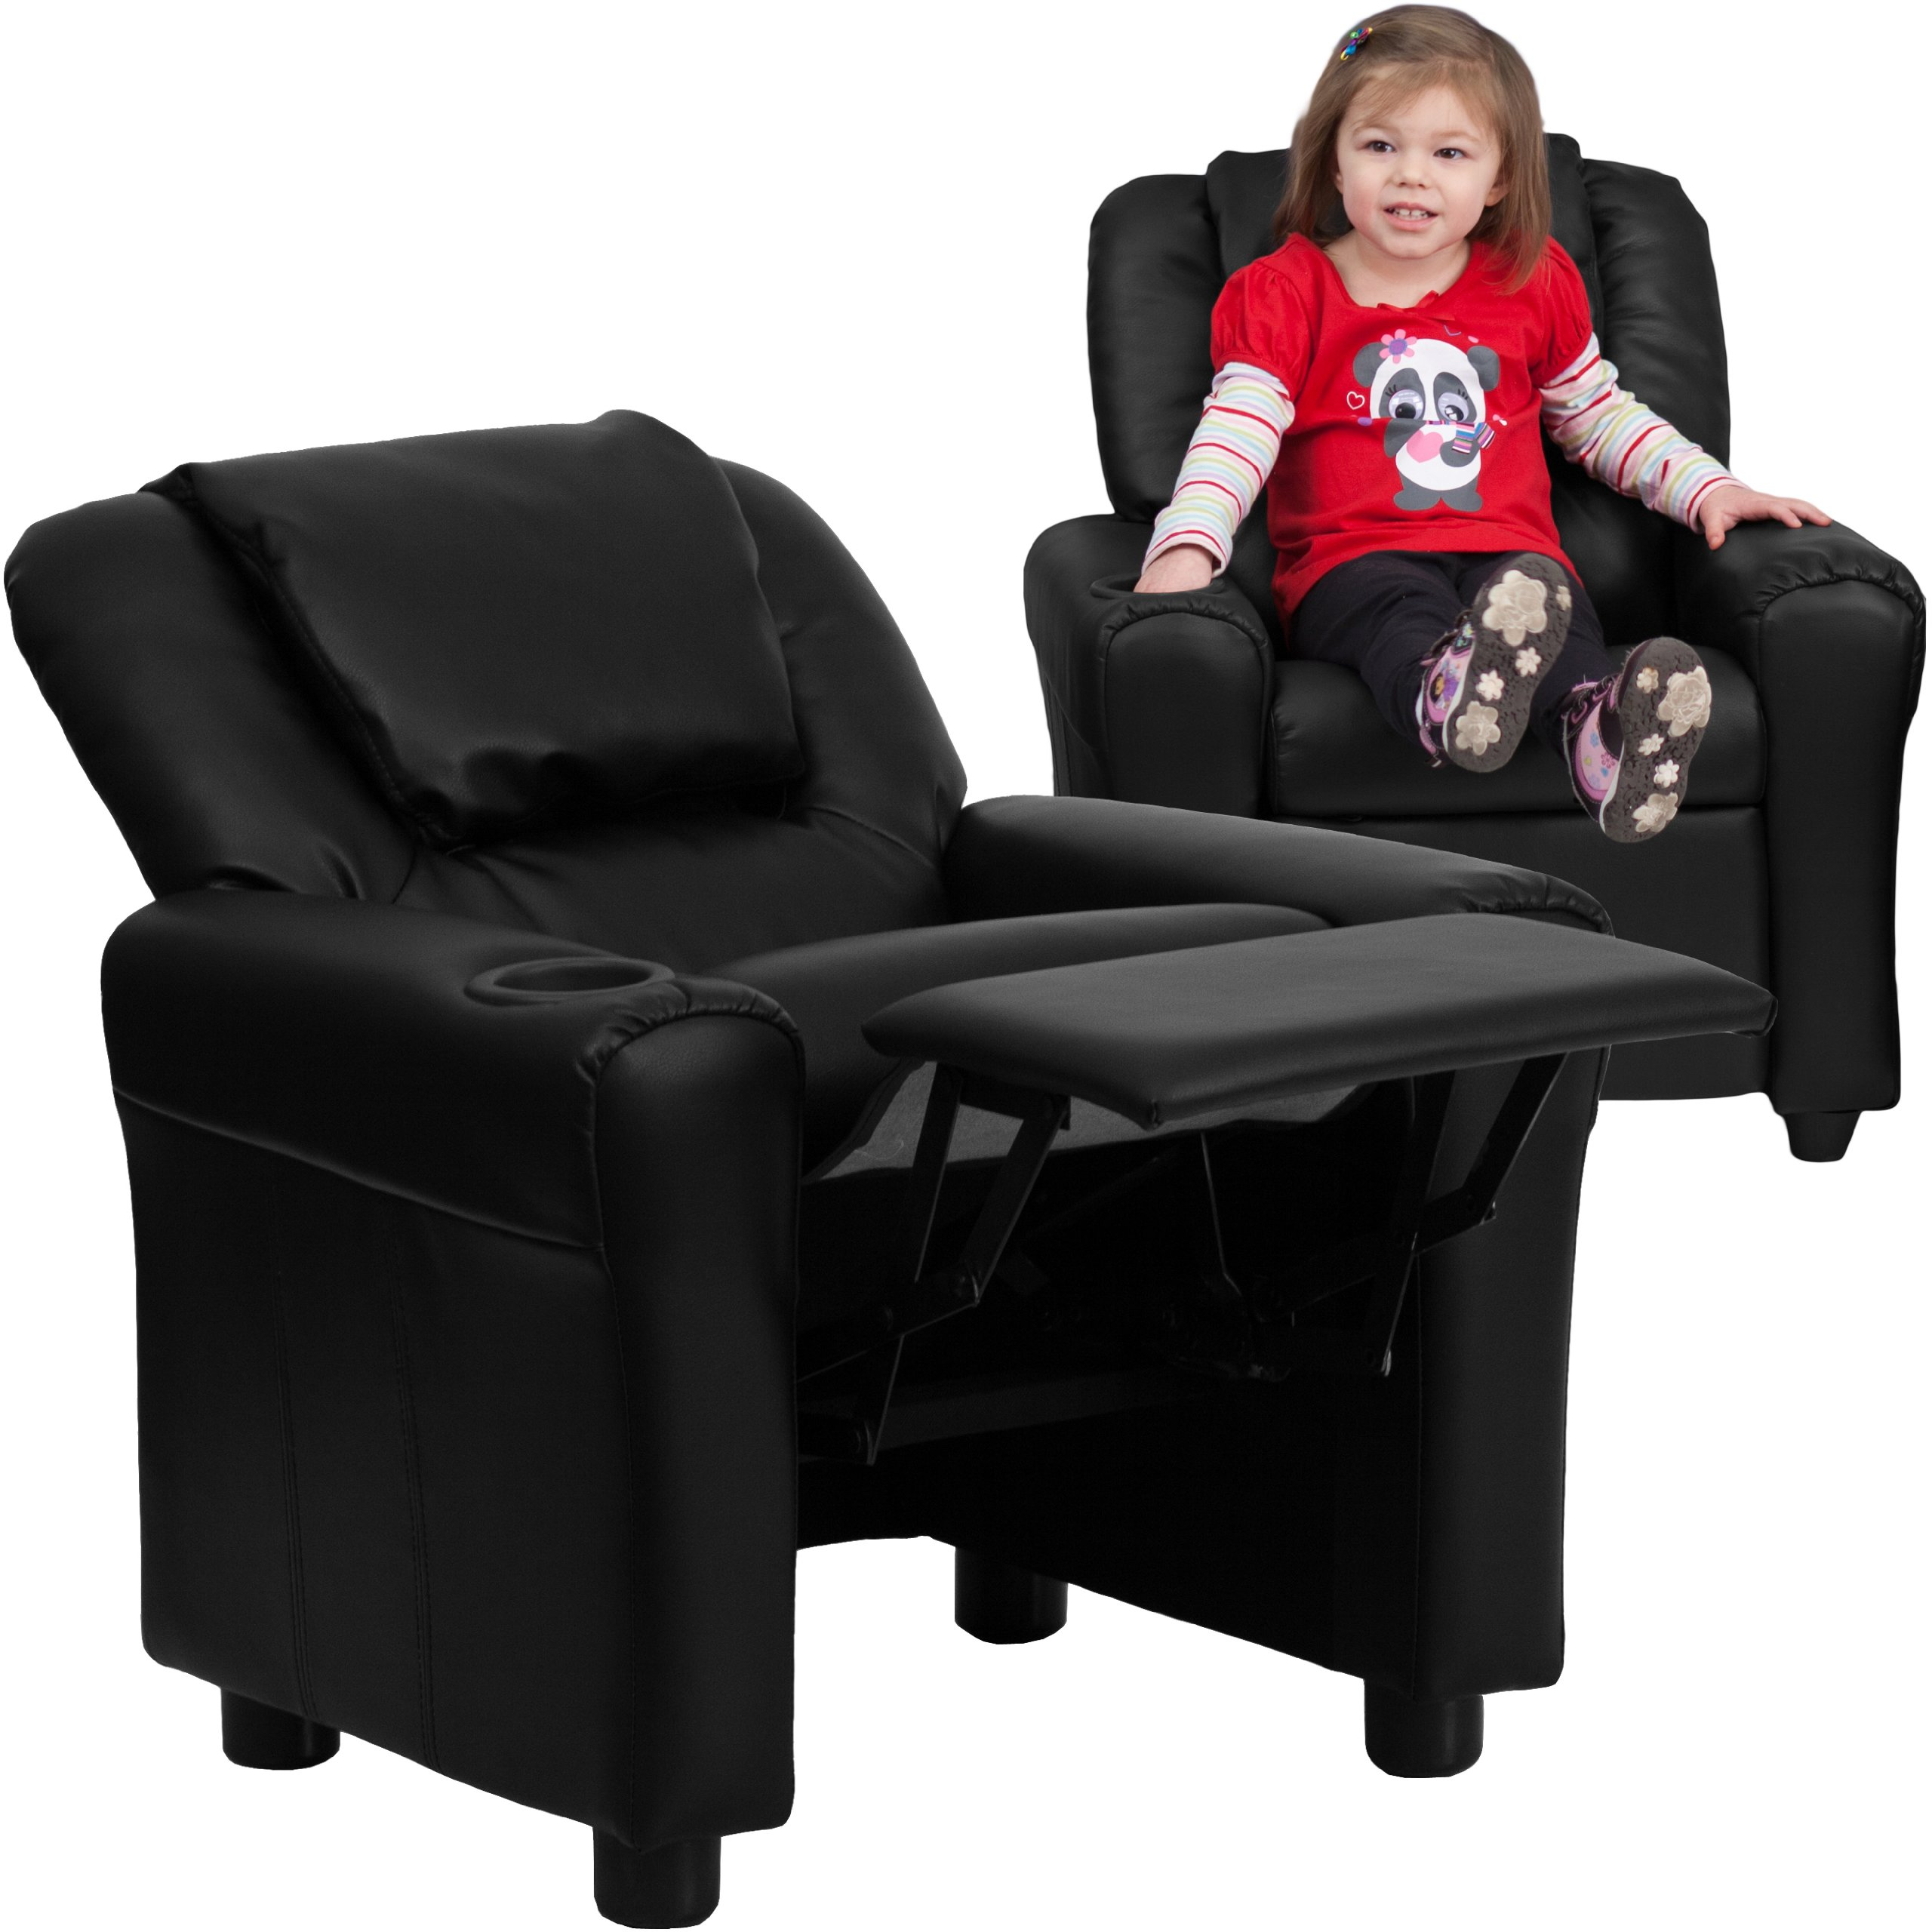 MFO Contemporary Black Leather Kids Recliner with Cup Holder and Headrest